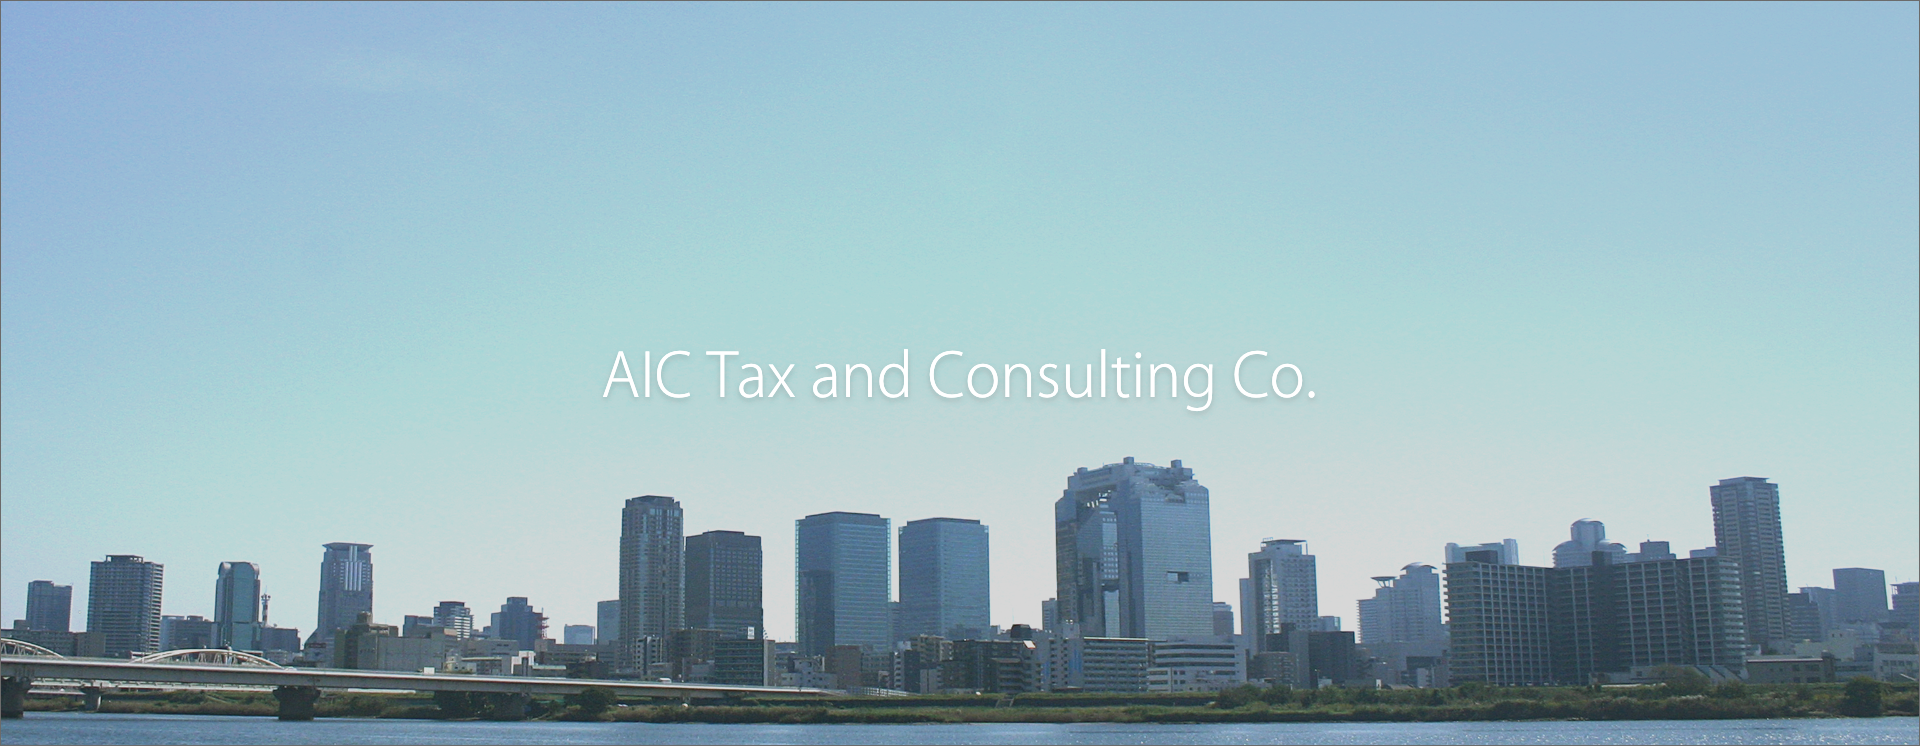 AIC Tax and Consulting Co.